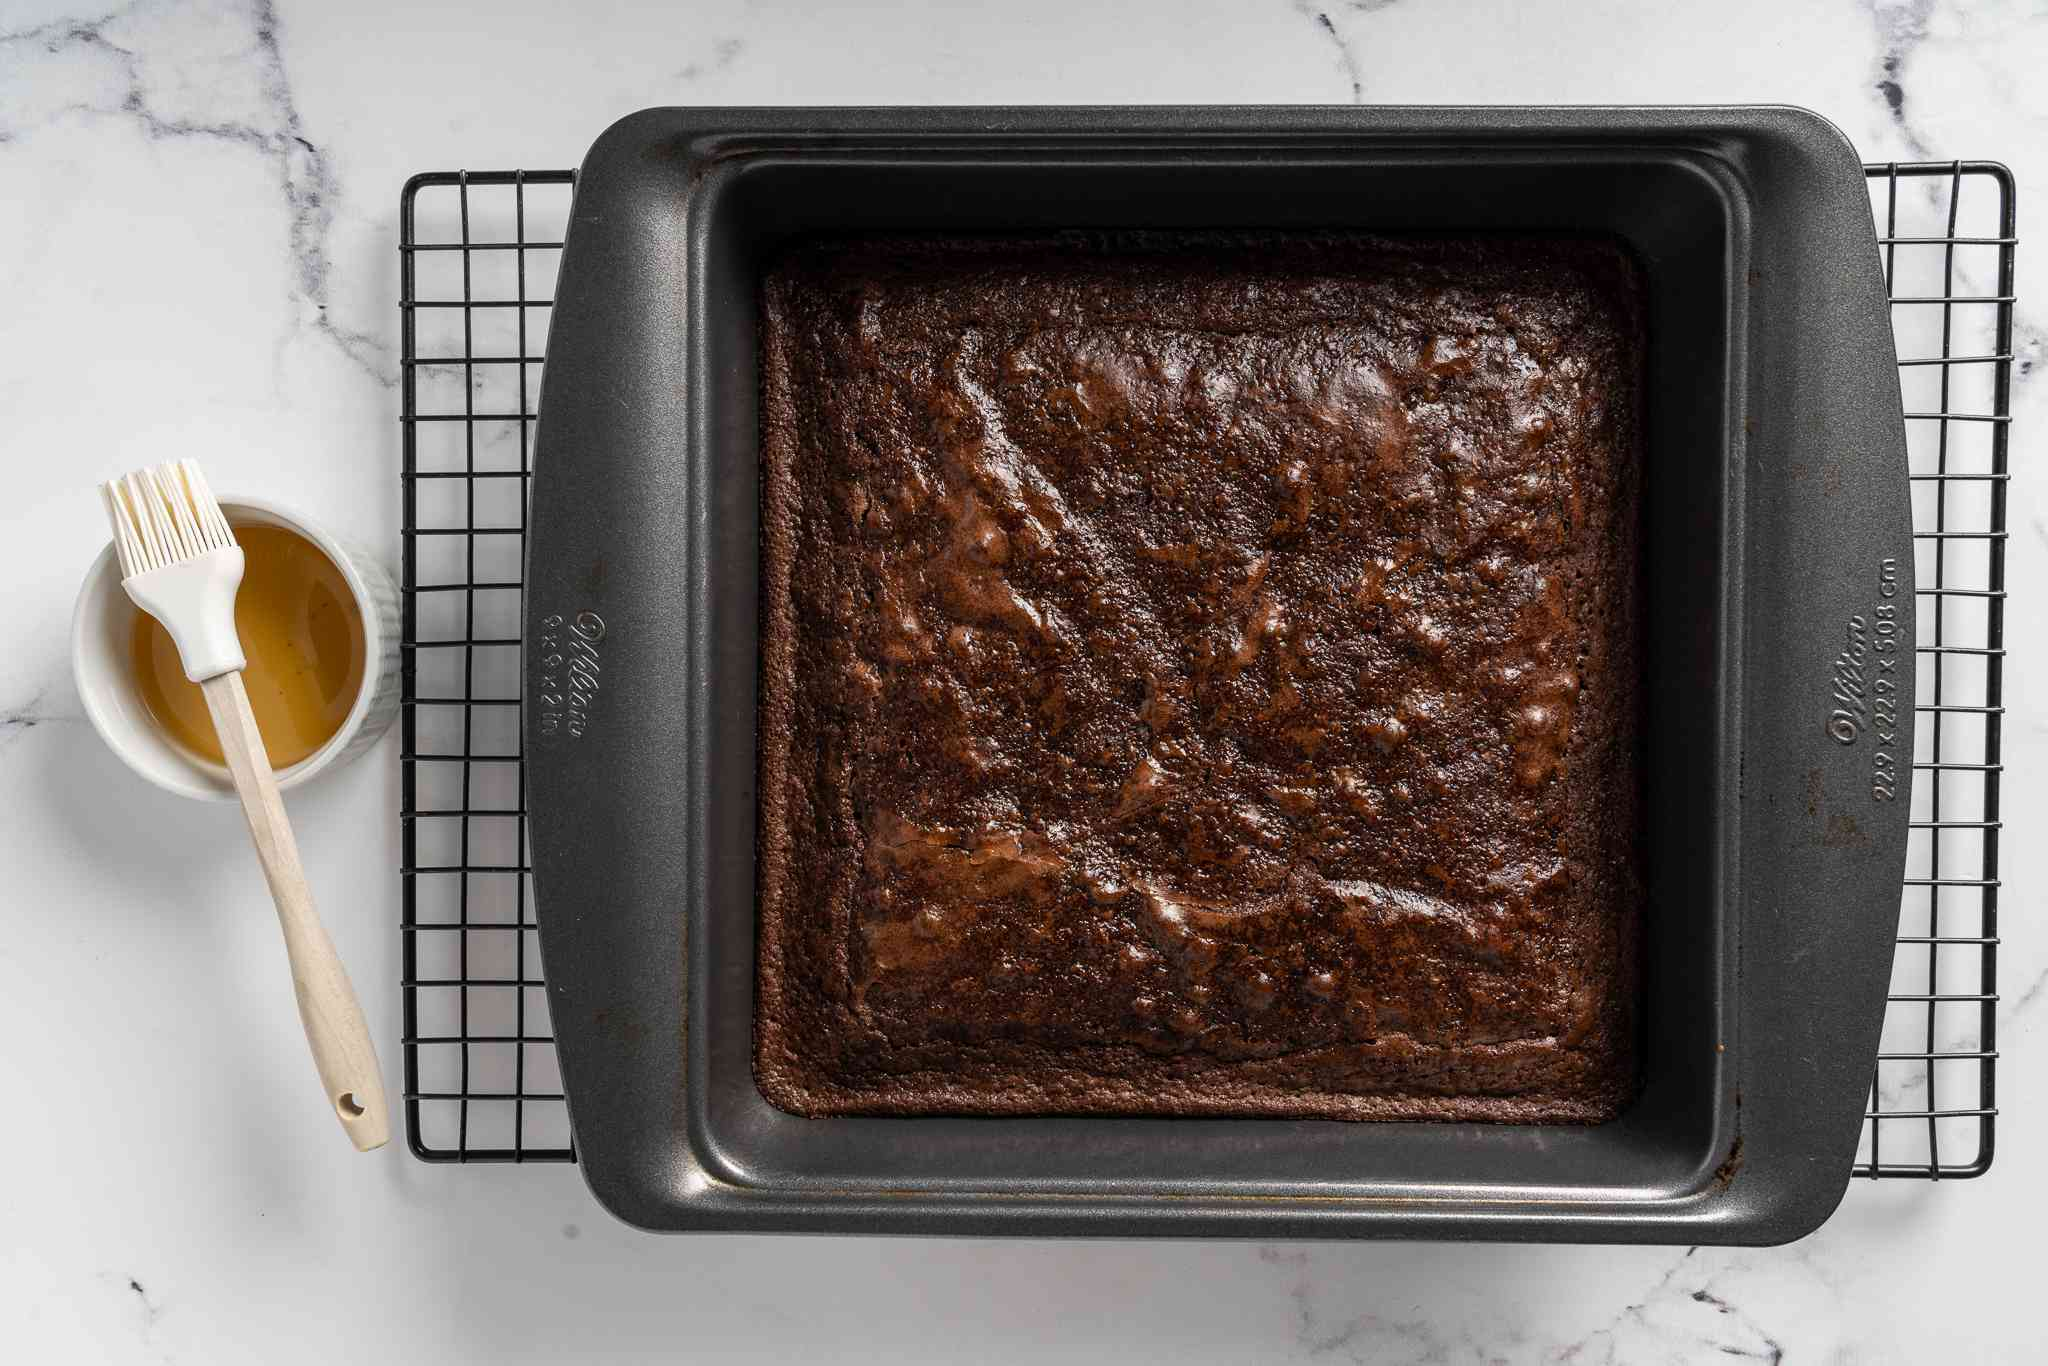 baked brownies in a baking pan on a cooling rack